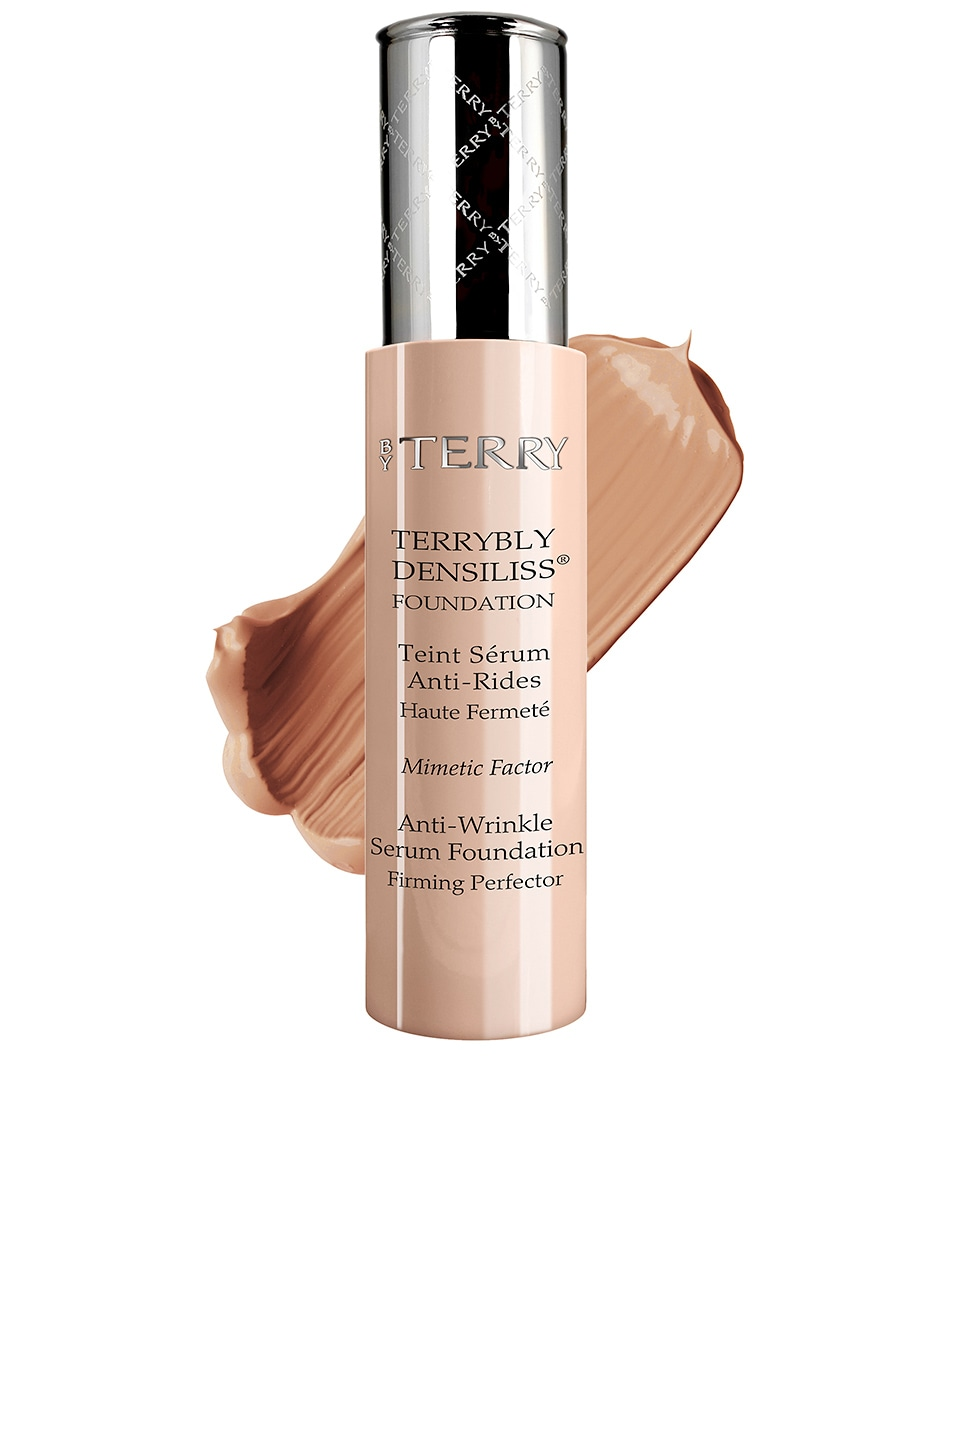 By Terry Terrybly Densiliss Serum Foundation in Honey Glow